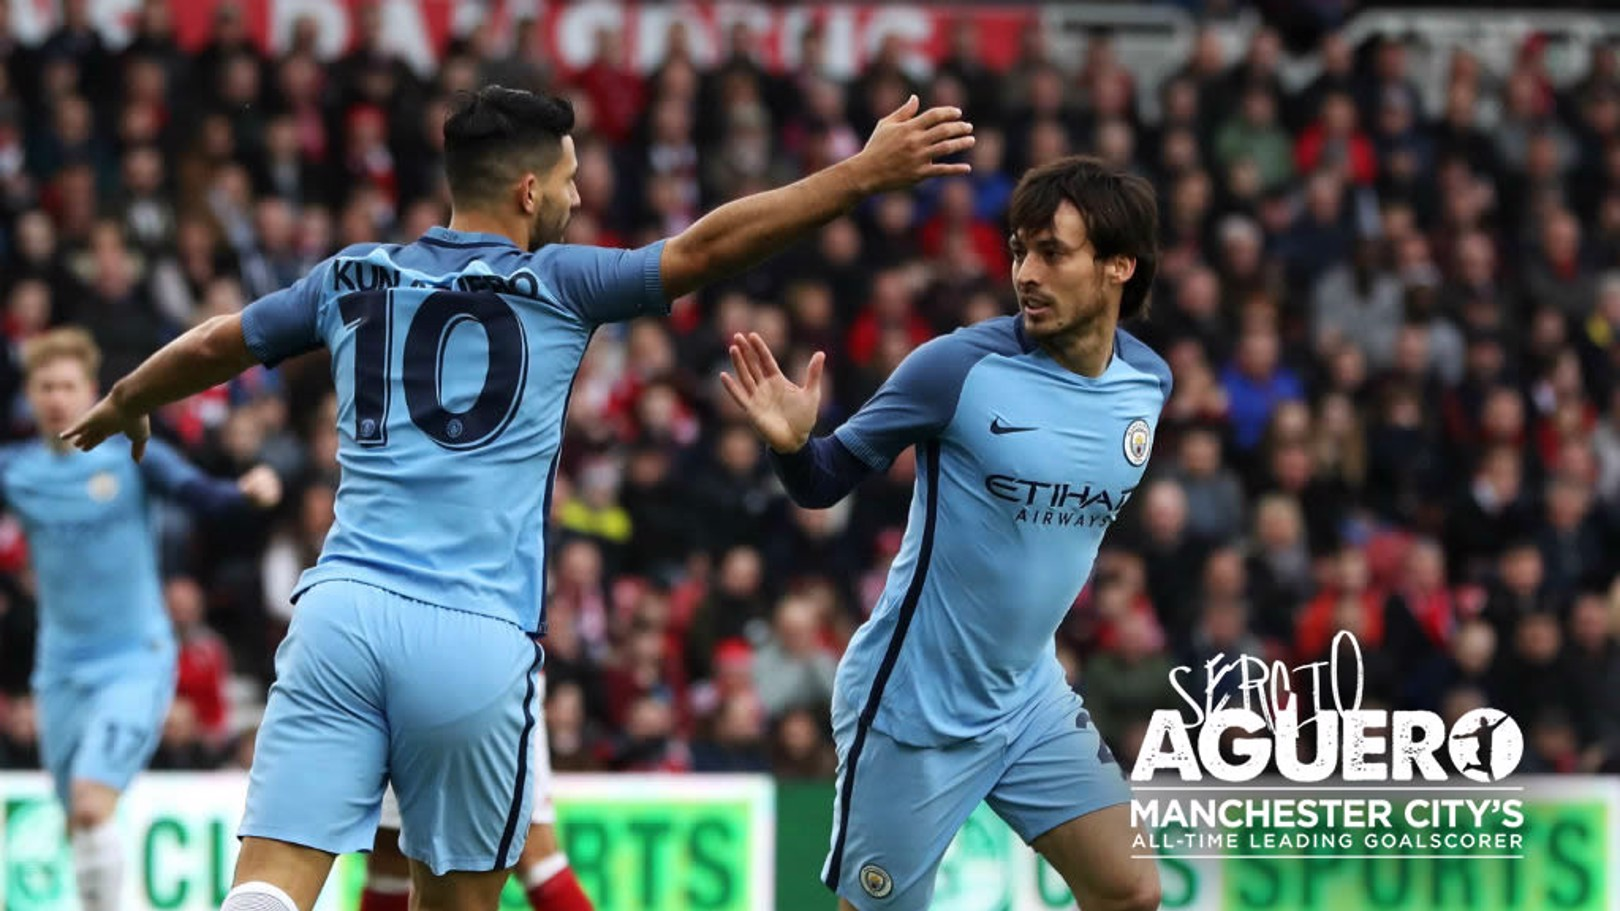 MAY I ASSIST YOU: David Silva leads the way in setting up Sergio